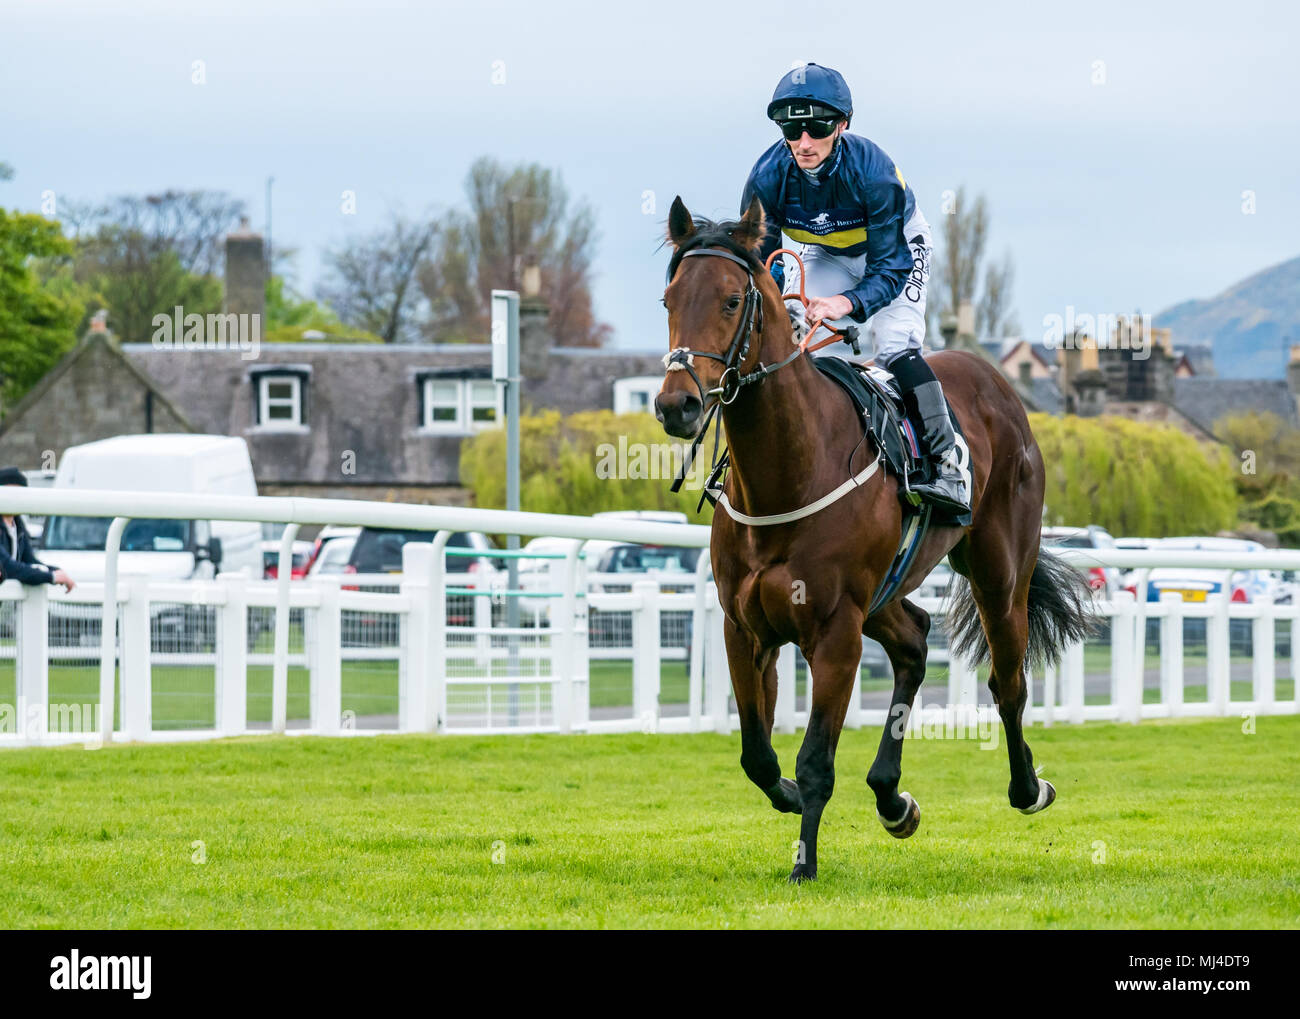 Musselburgh, Scotland, 4 May 2018. Musselburgh Race Course, Musselburgh, East Lothian, Scotland, United Kingdom. A race horse gallops to the start at the afternoon flat horse racing meet. Horse 'Montague' ridden by jockey Daniel Tudhope from Ireland in the 3.40 Weatherbys Bank Foreign Exchange Handicap - Stock Image